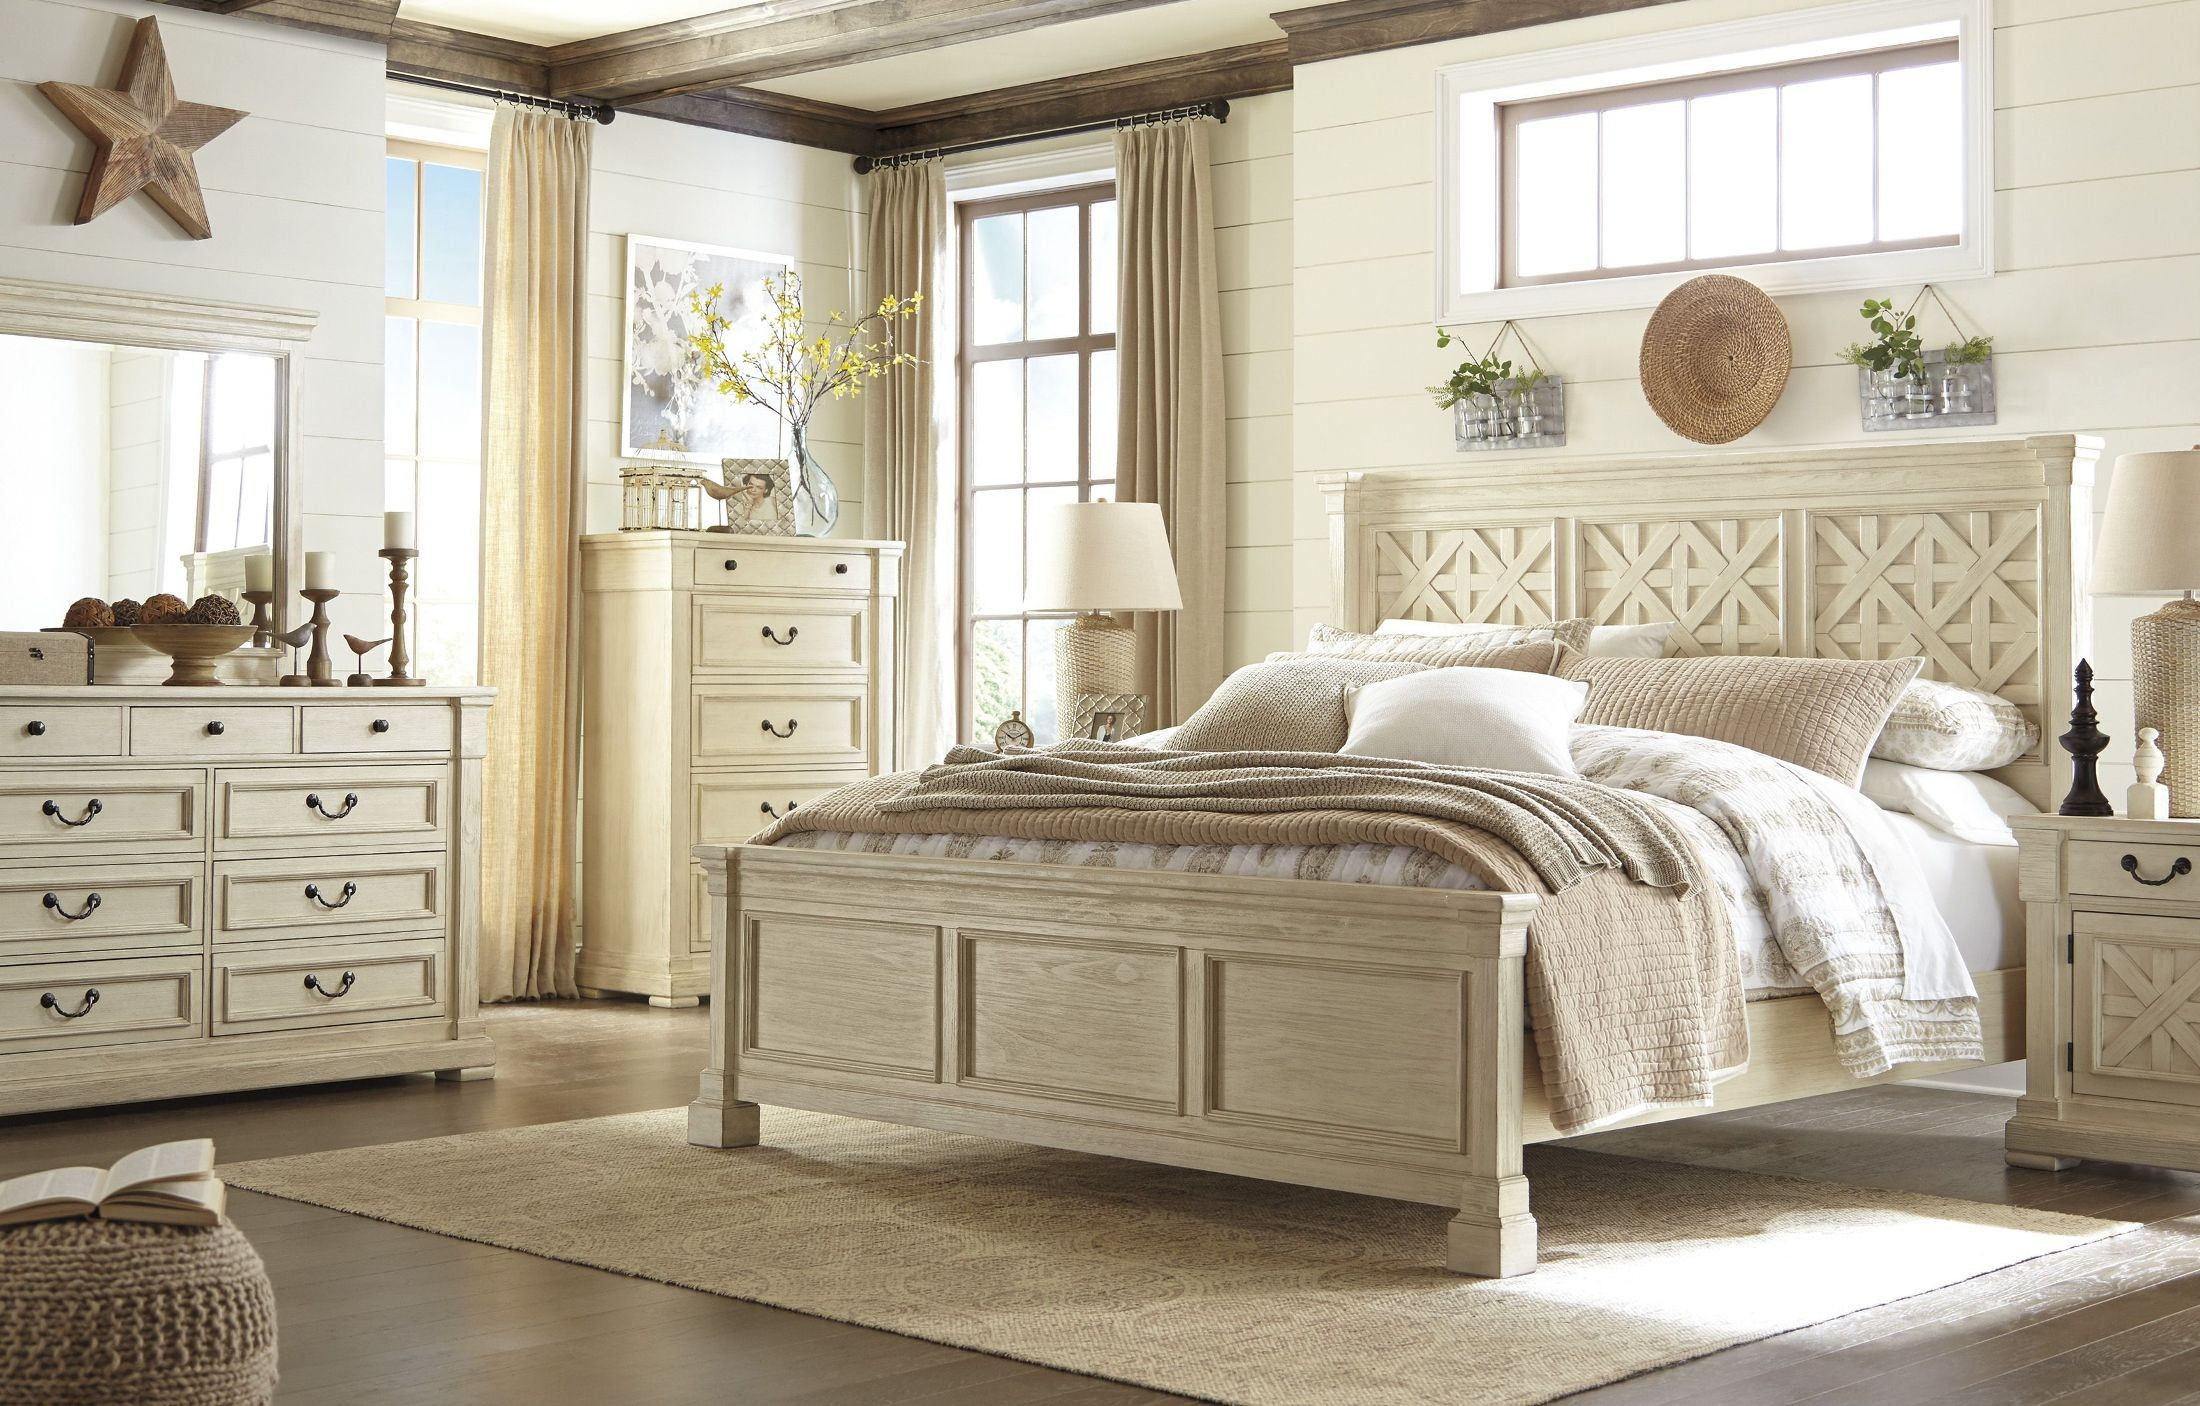 Bolanburg White Panel Bedroom Set, B647-54-57-96, Ashley